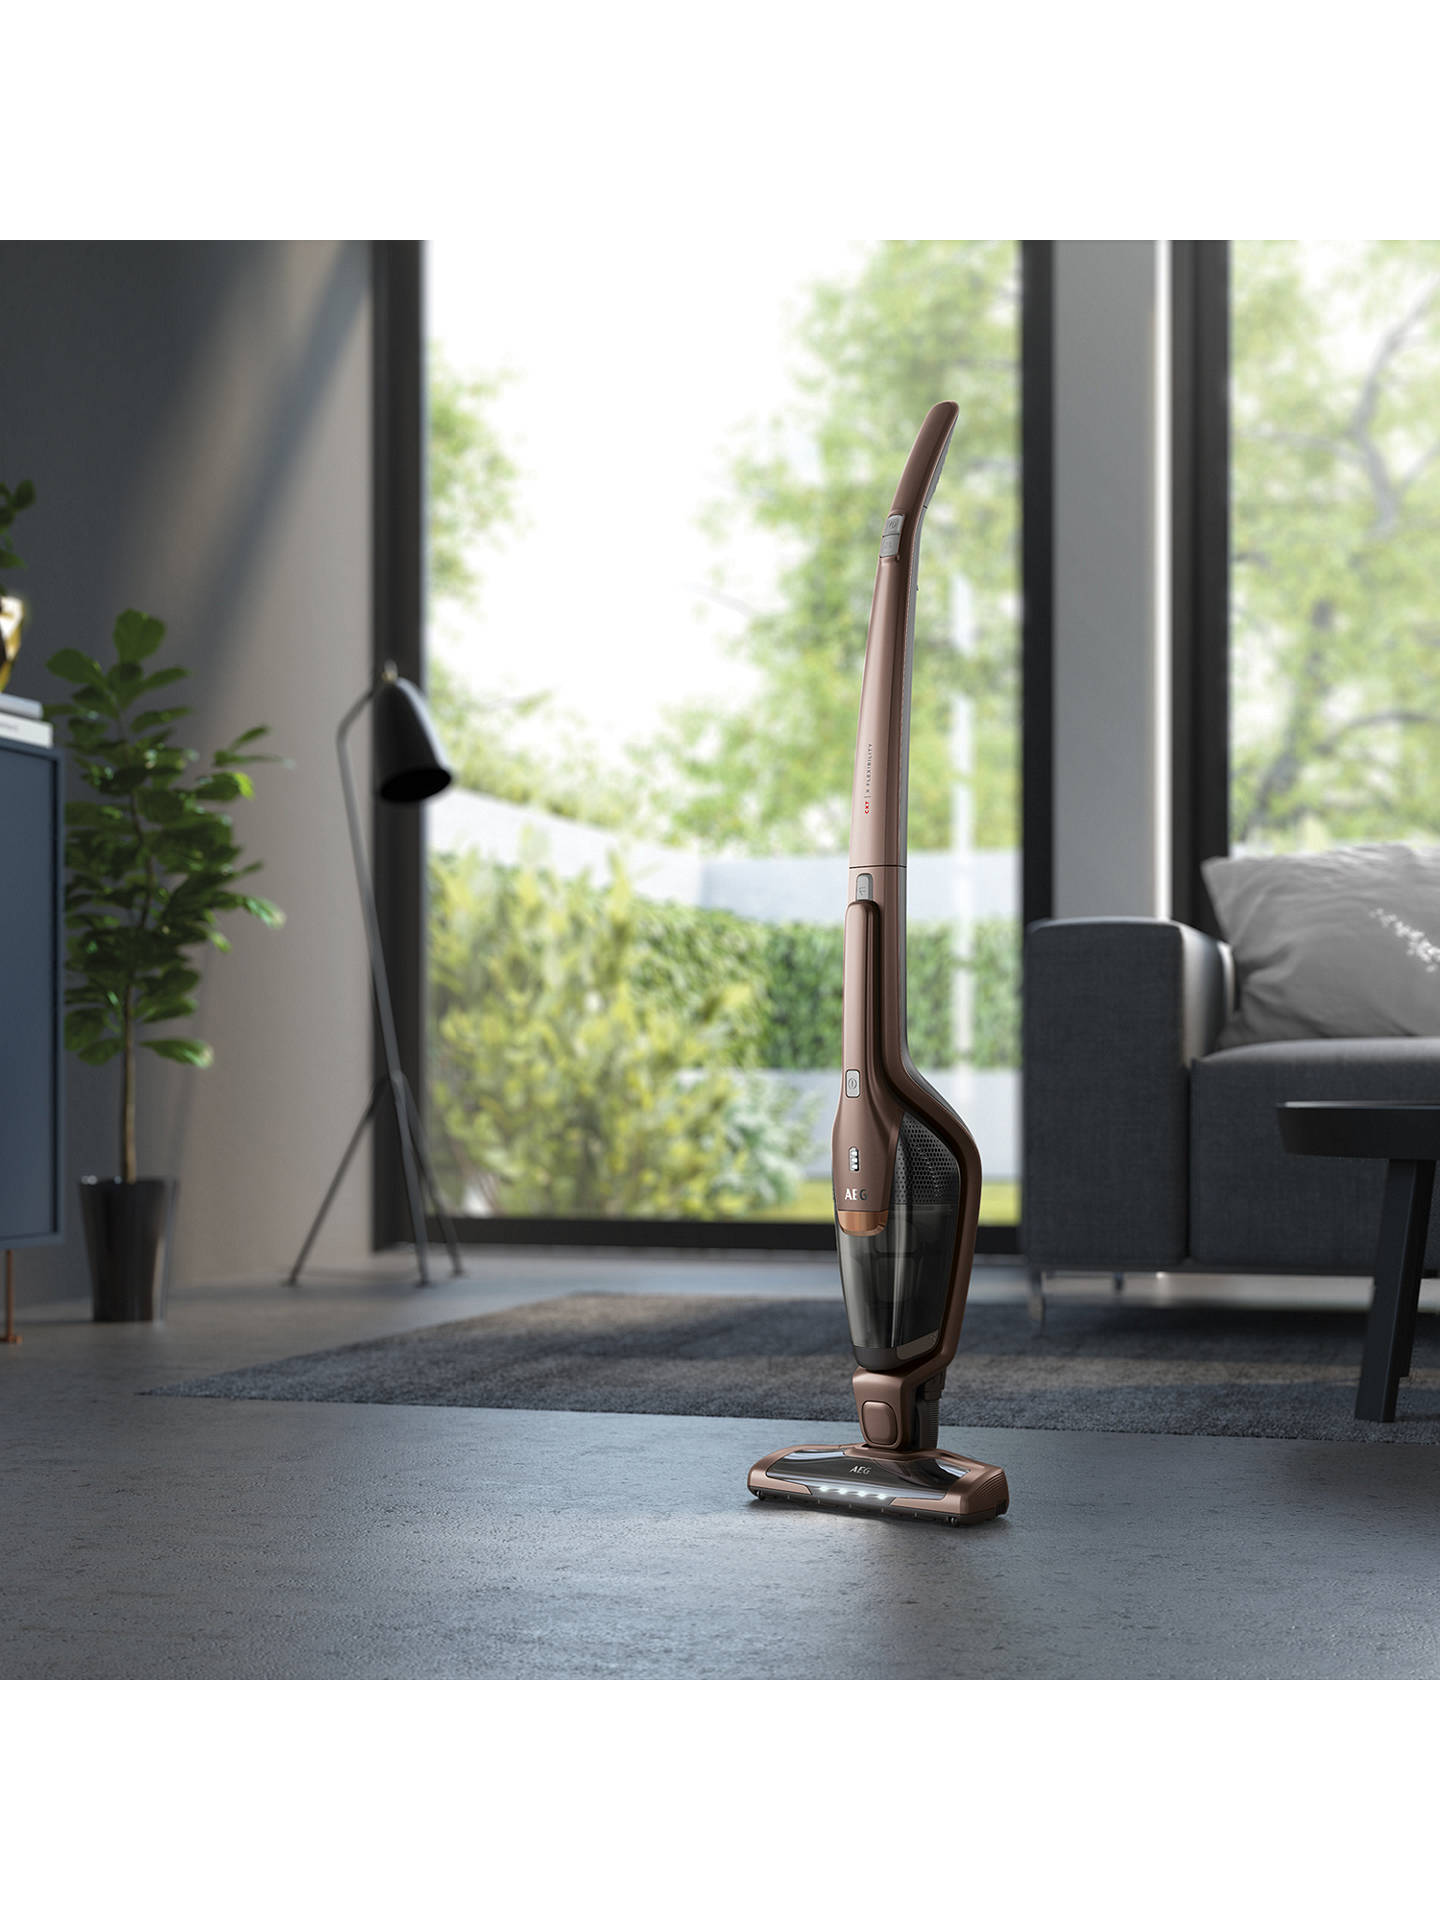 Buy AEG CX7-2-B360 Animal & Car Cordless 2-in-1 Detachable Handheld Vacuum Cleaner, Bronze Online at johnlewis.com